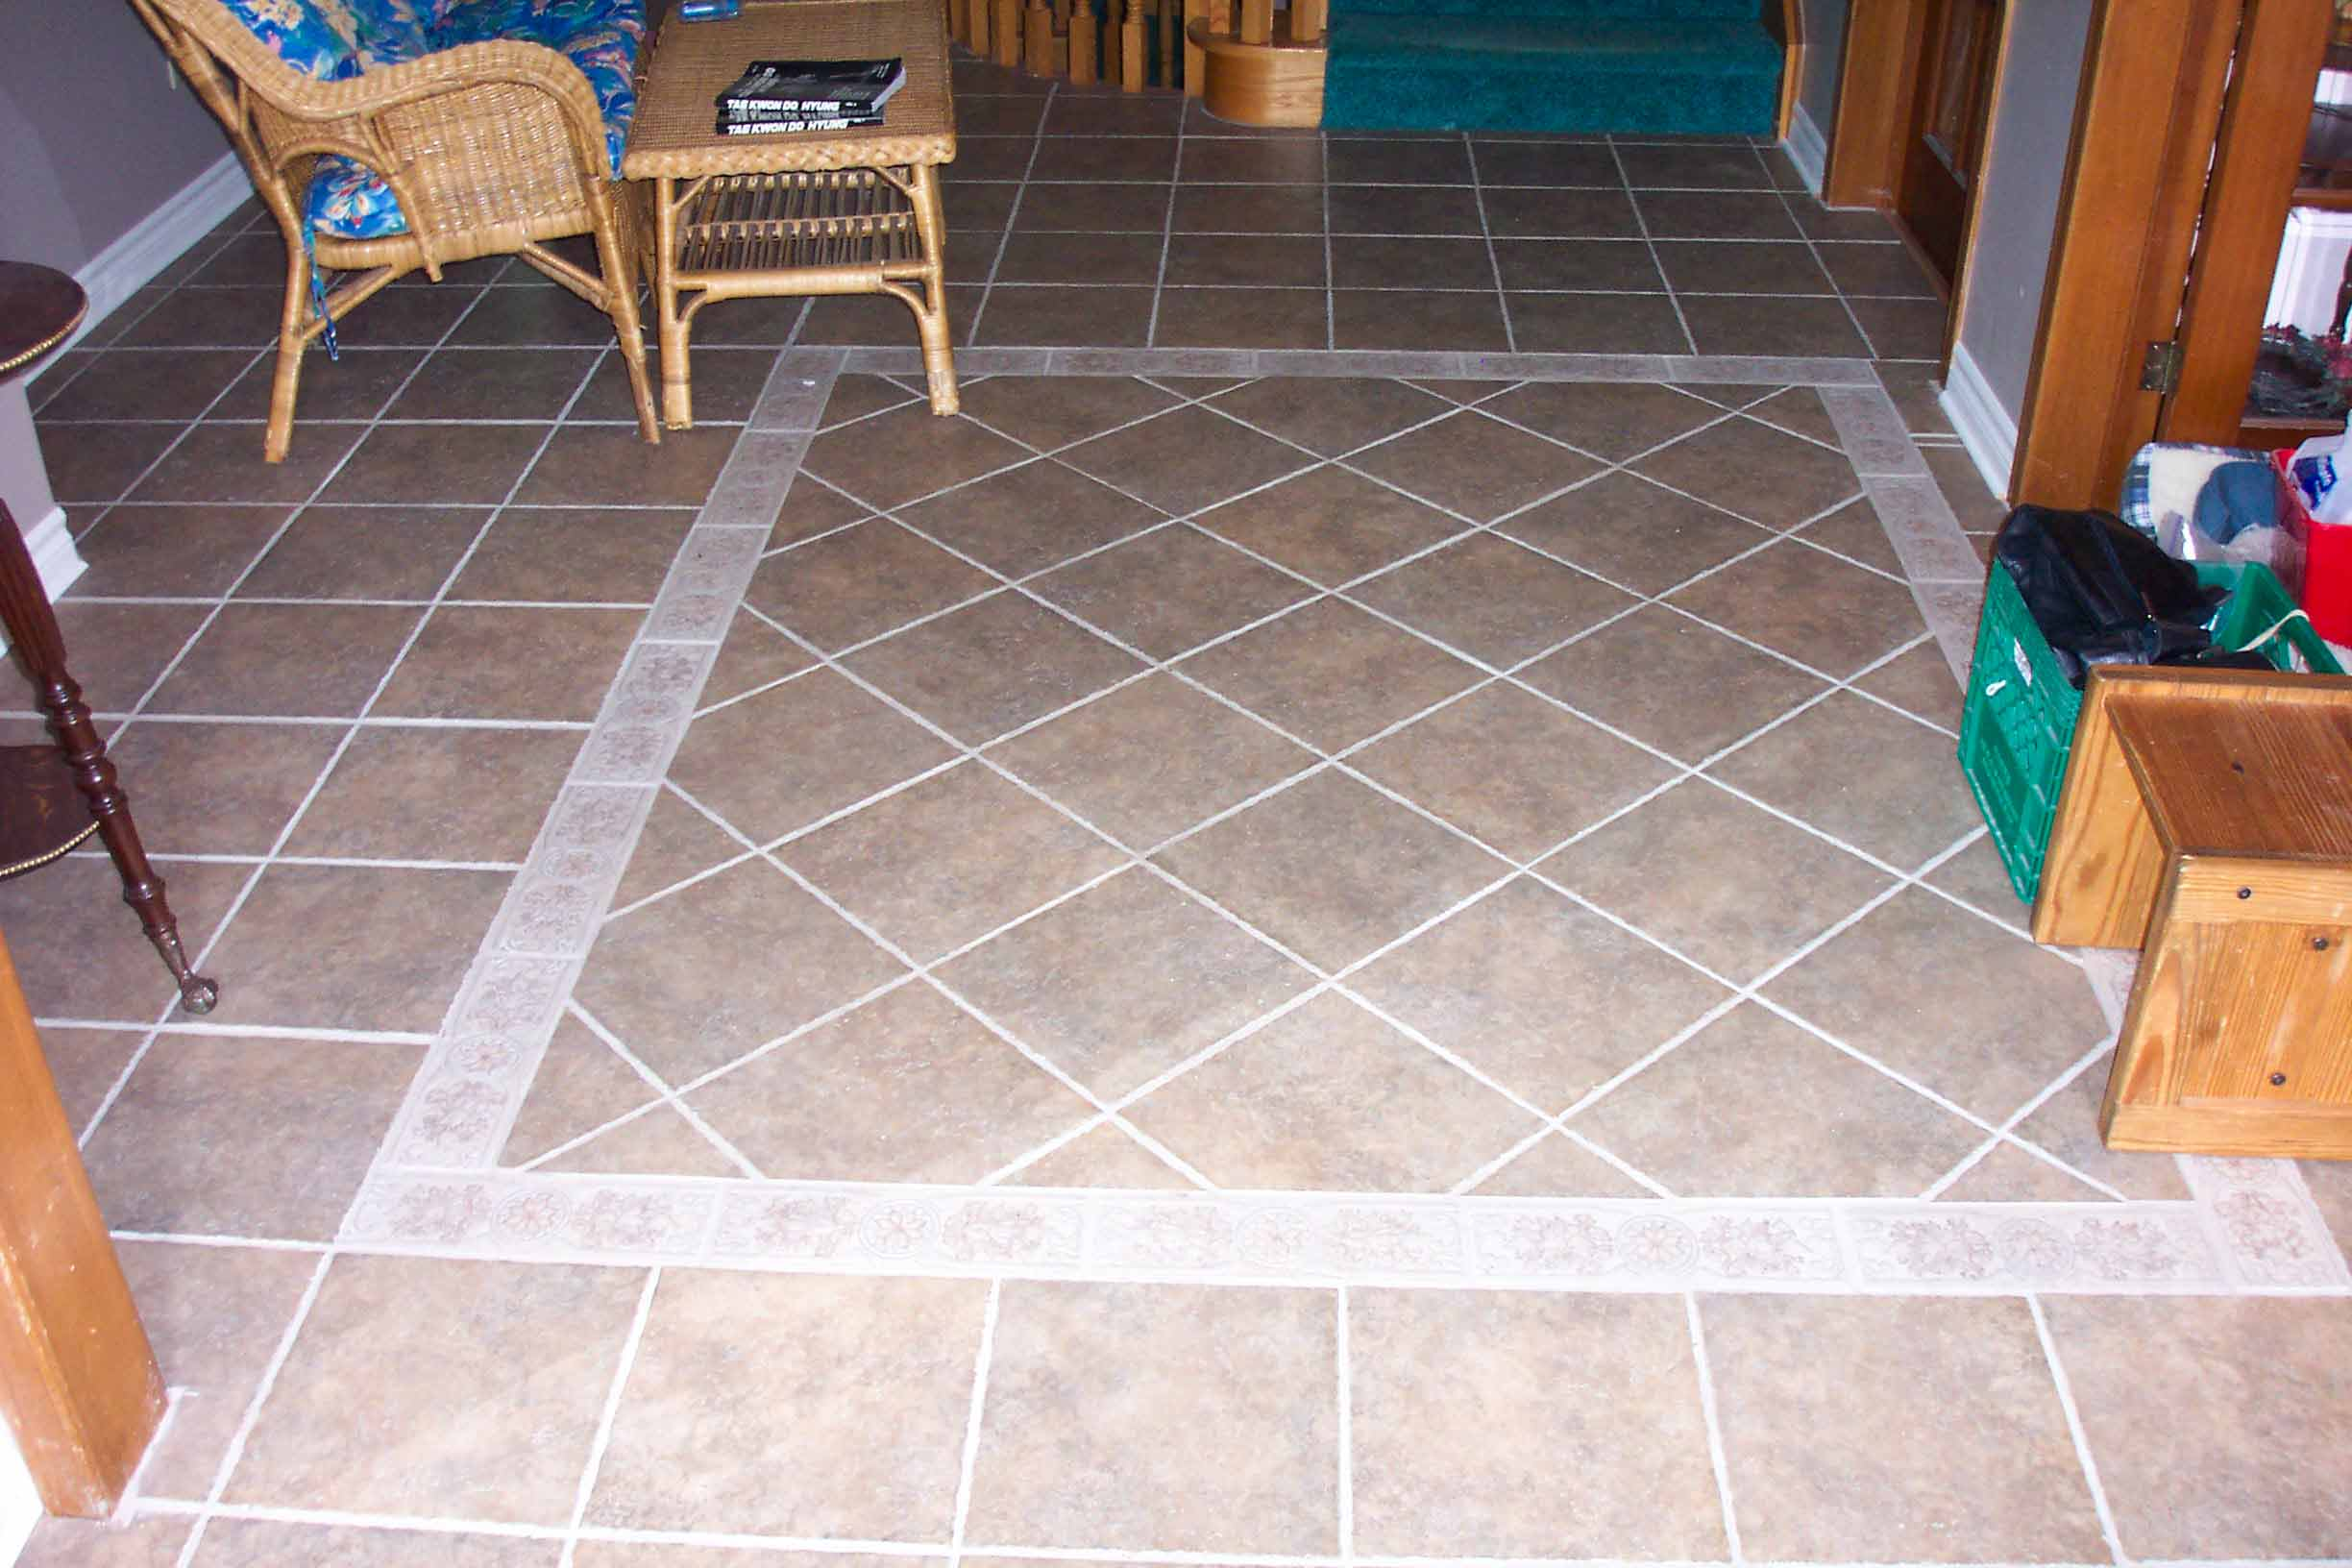 Ceramic Tile Floor Design Patterns 2448 x 1632